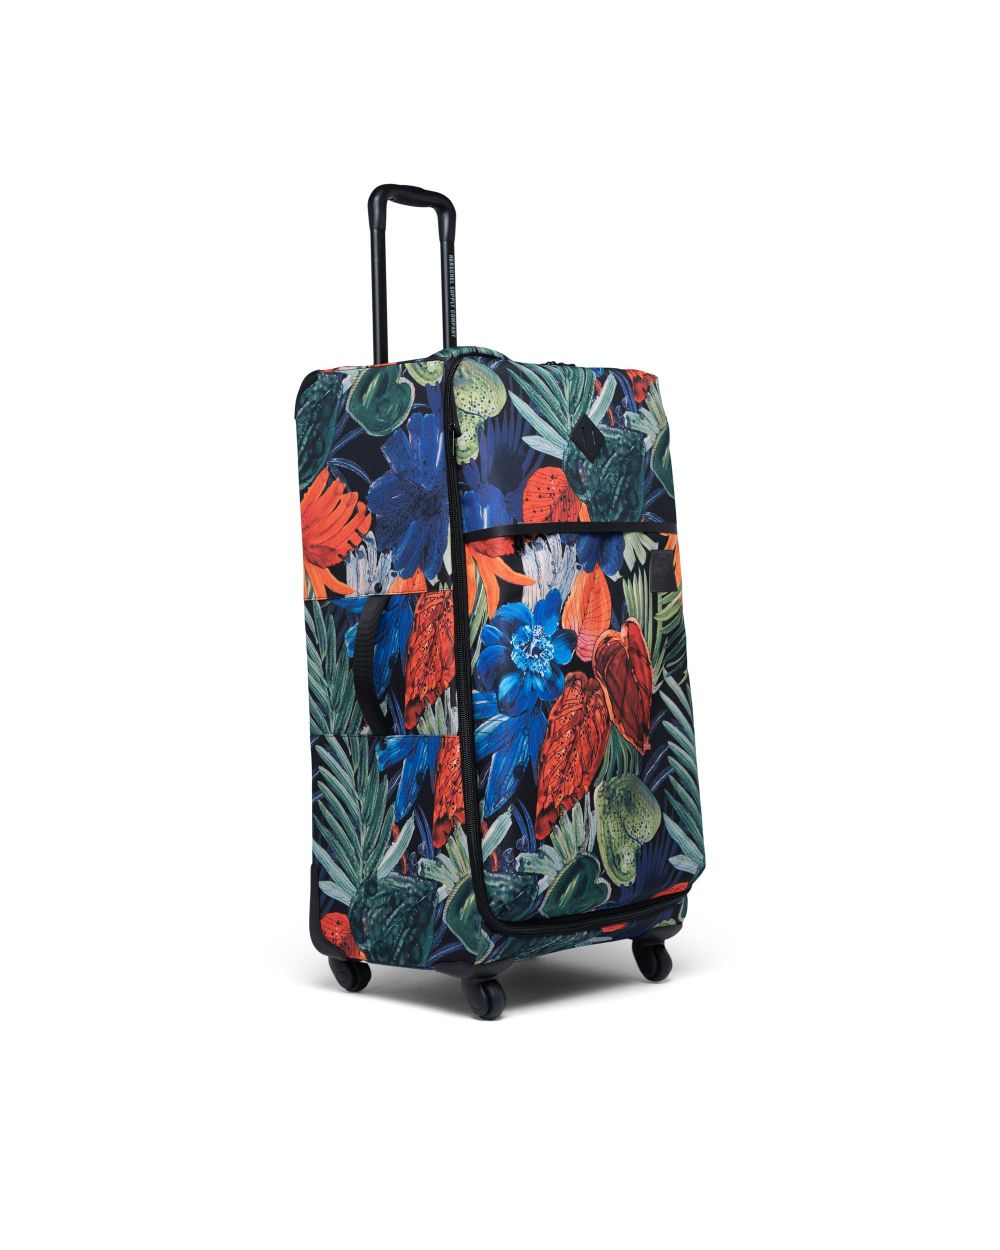 Herschel highland luggage large in tropical colour print